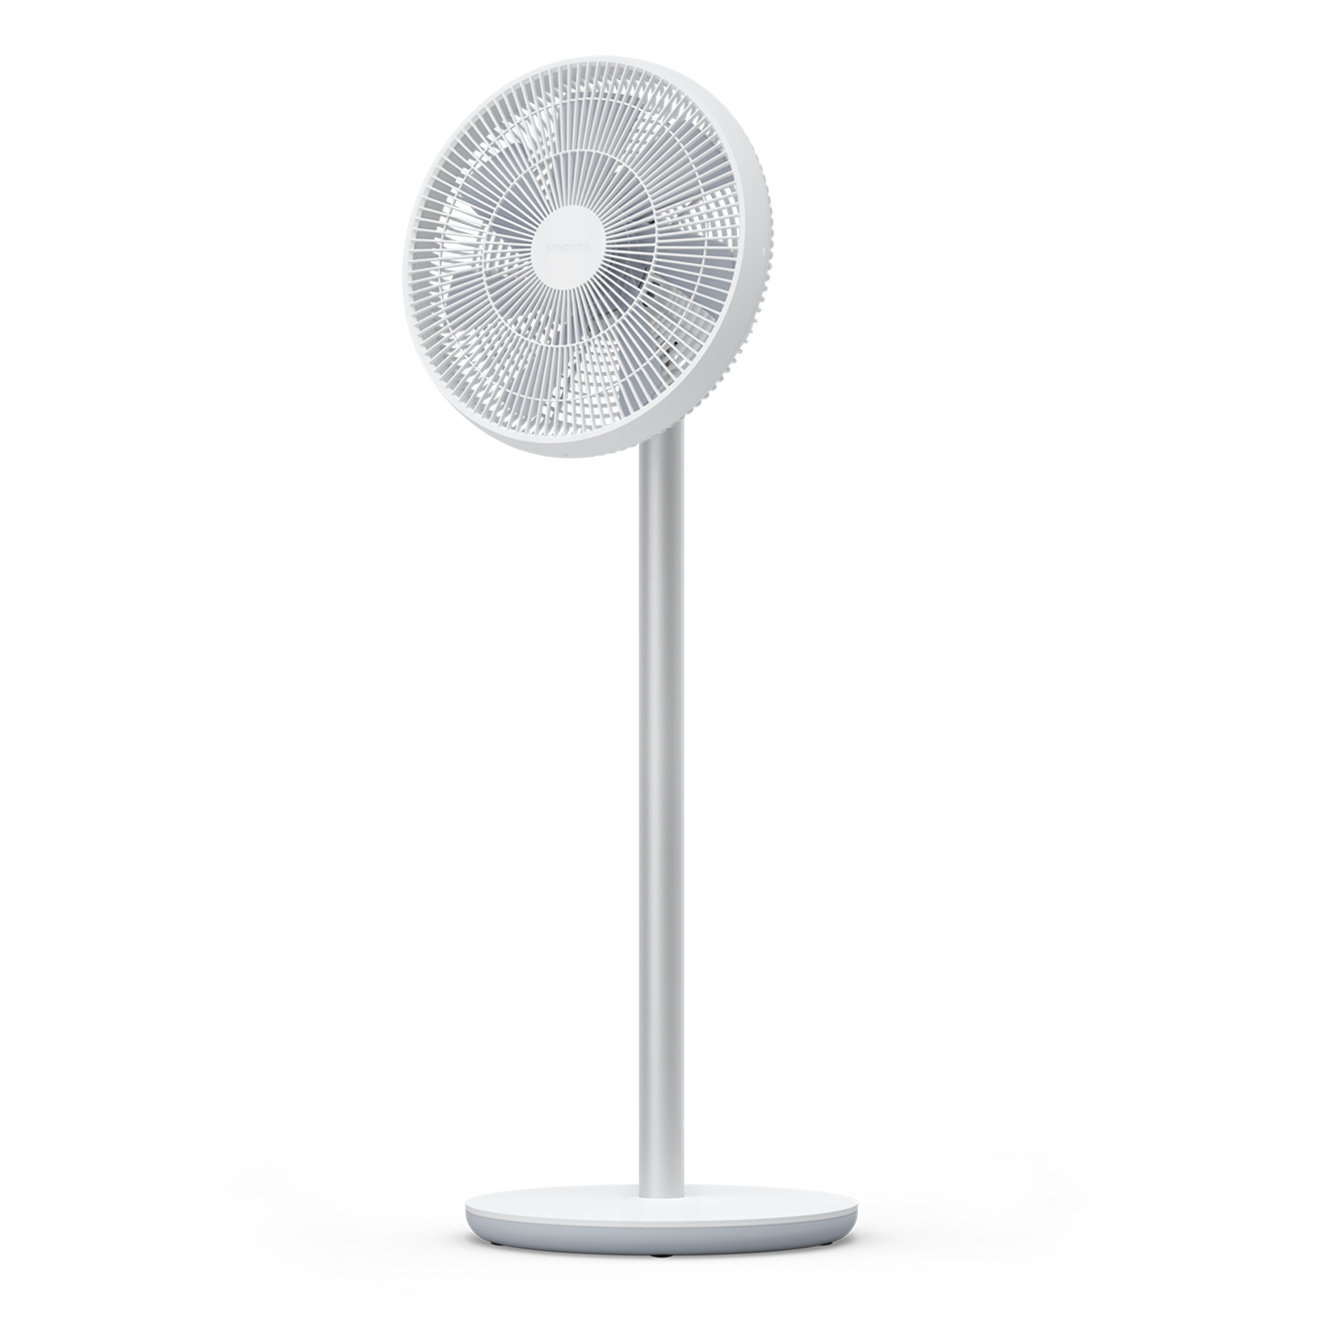 Home Security LIMITED DEAL: Super-Quiet Cordless Smart Fan